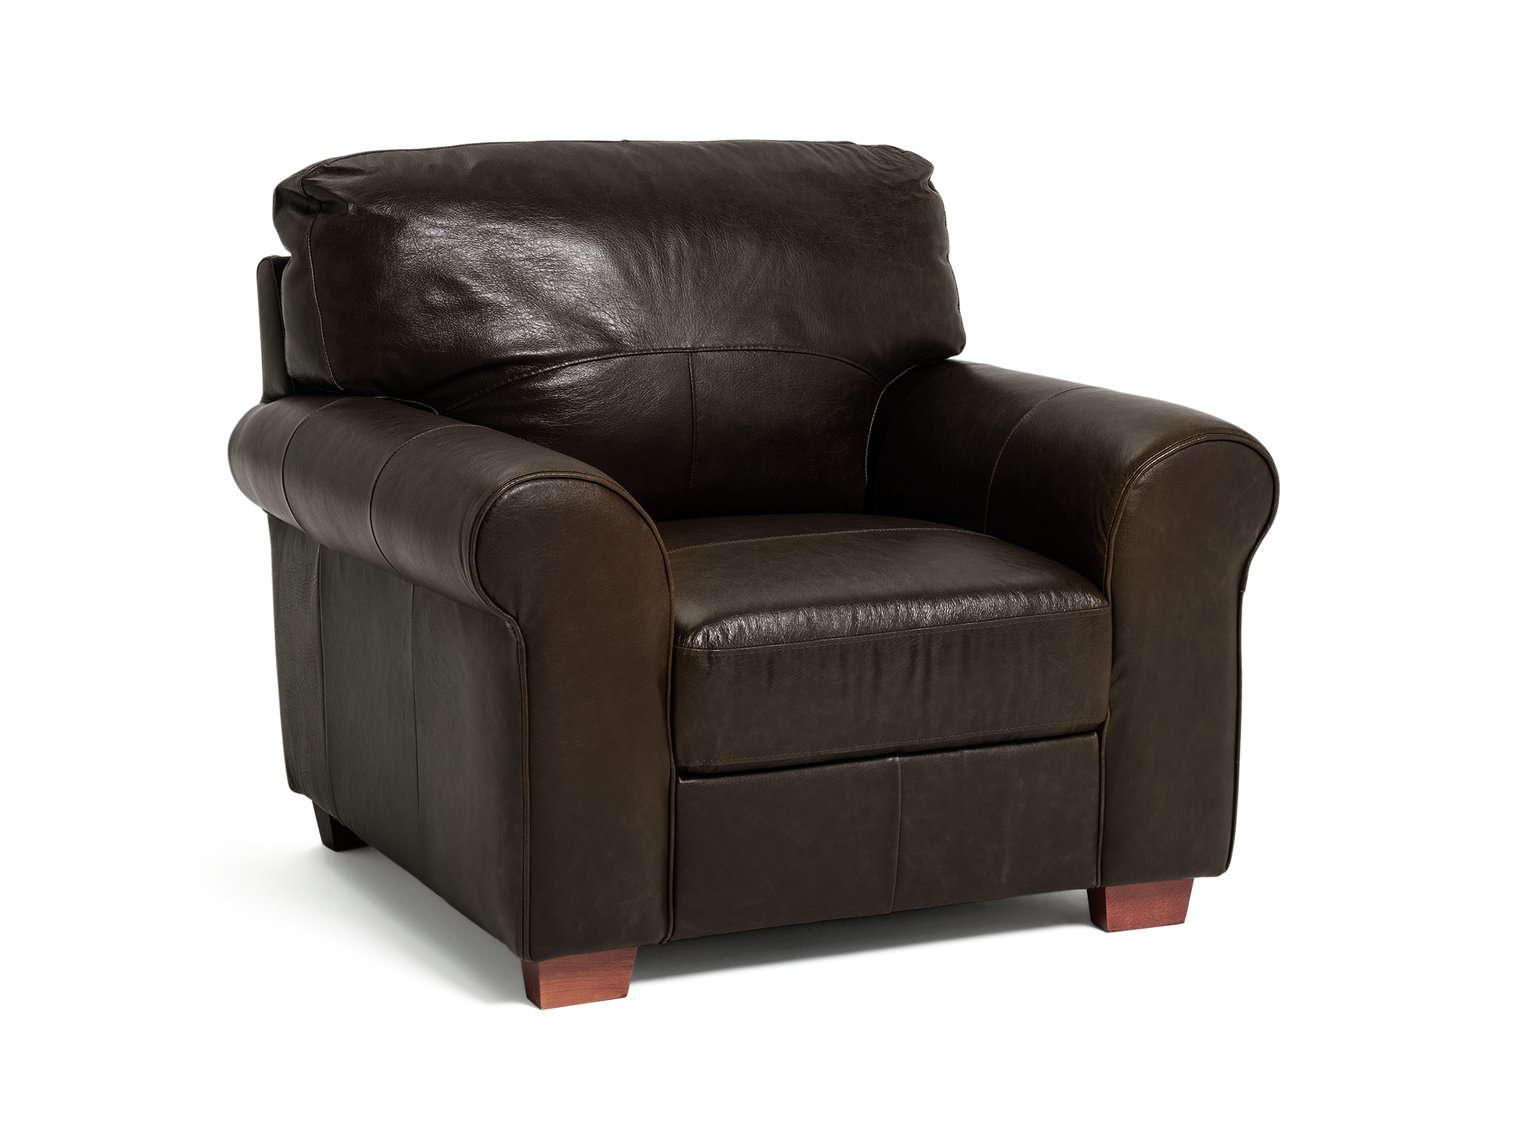 Buy Argos Home Salisbury Leather Armchair   Dark Brown | Armchairs And  Chairs | Argos